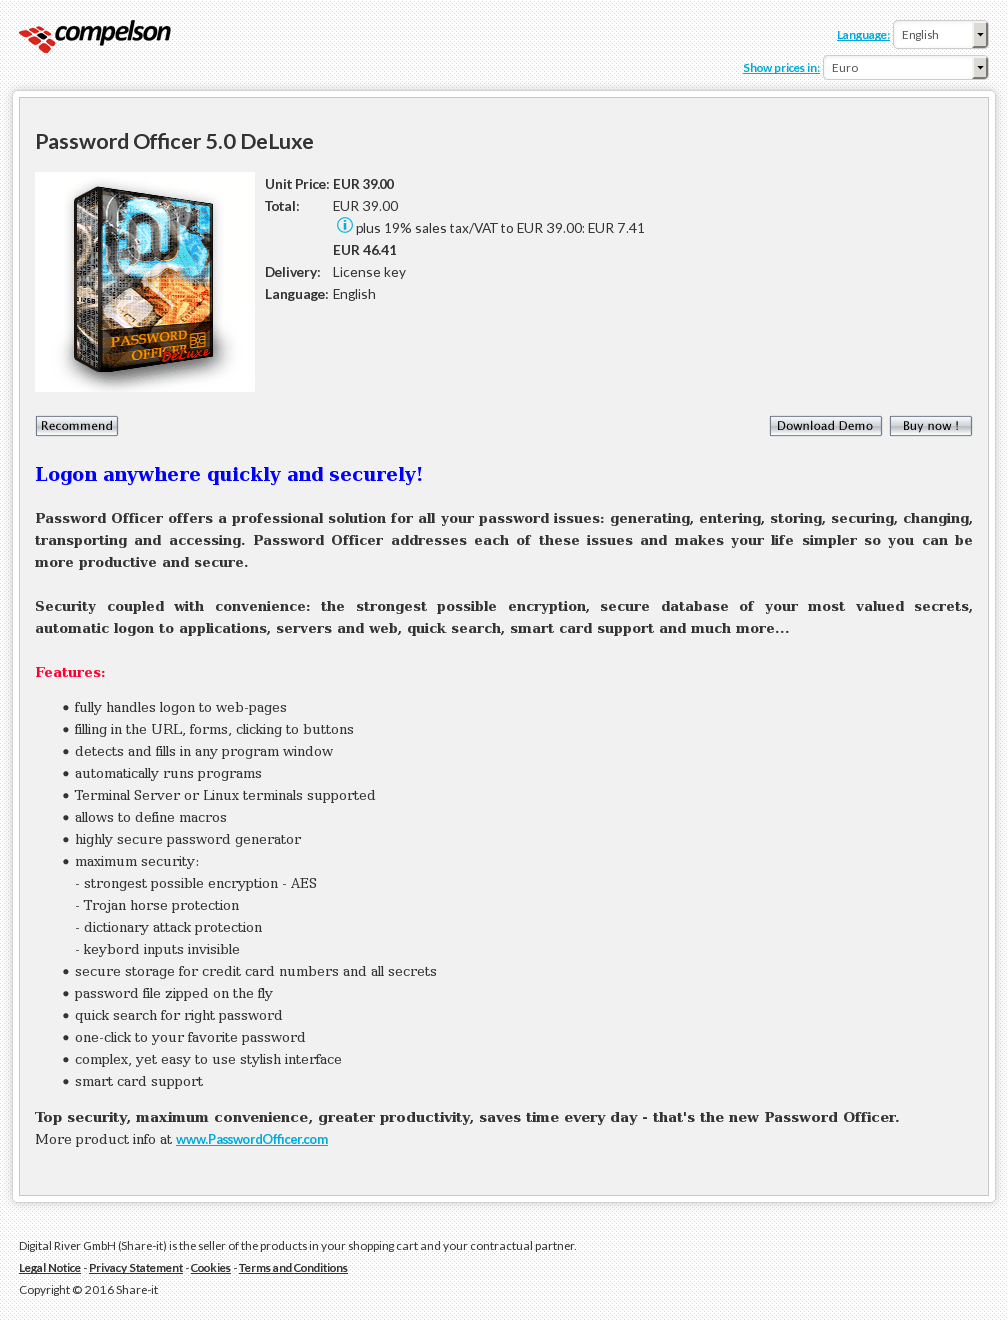 Password Officer Deluxe Review